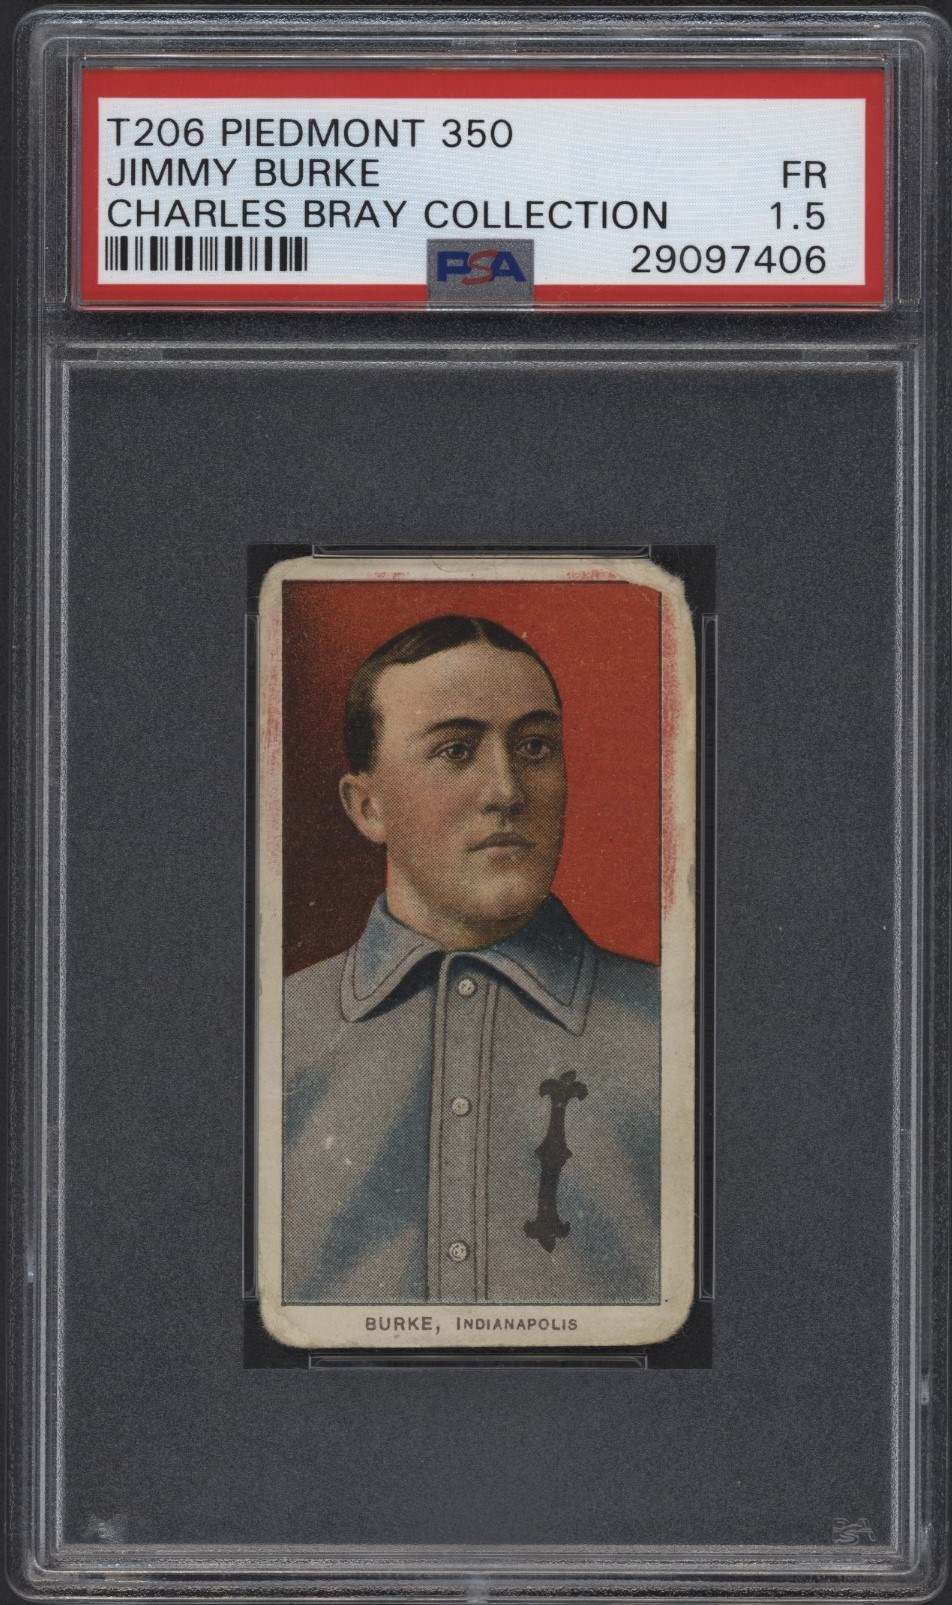 Baseball and Trading Cards - Monthly 09-18